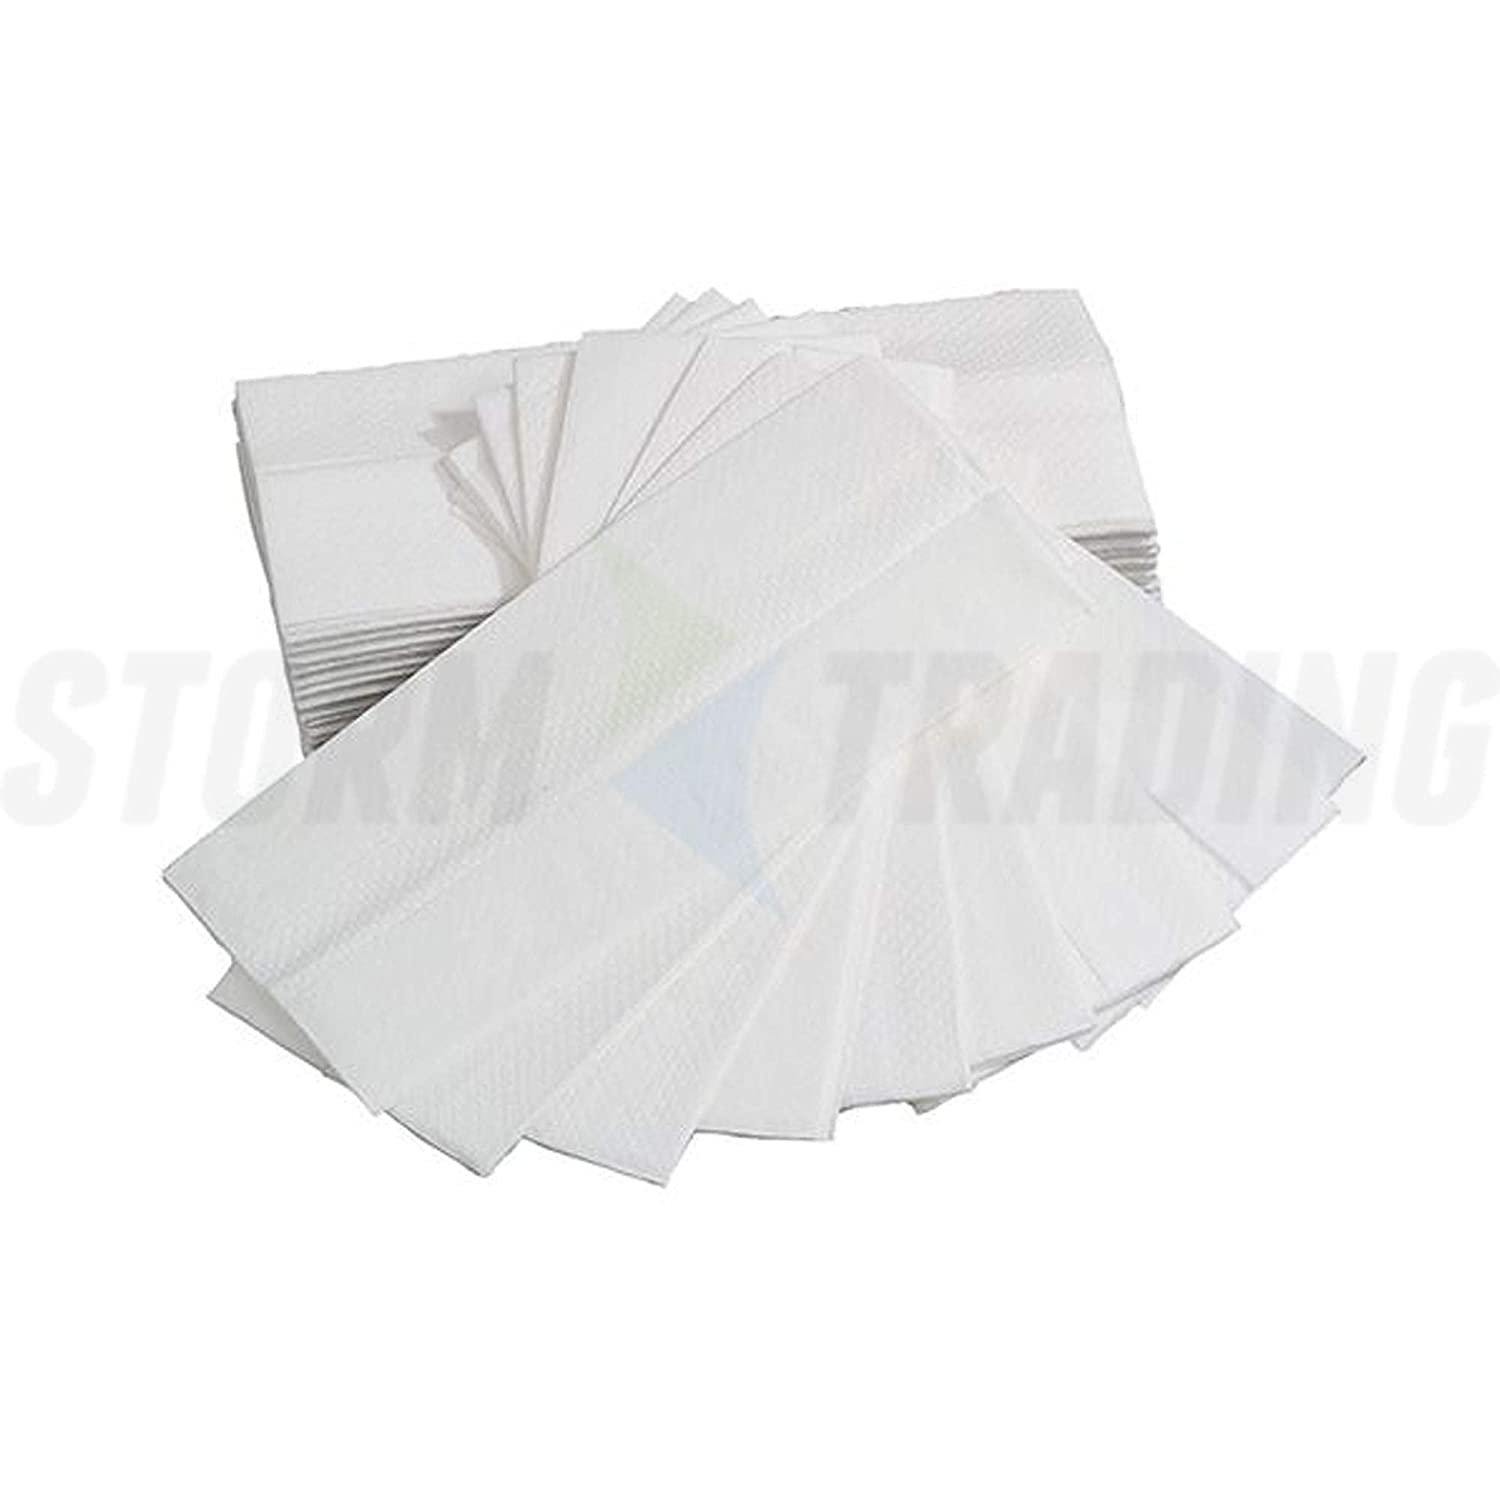 2624 White C Fold High Quality Hand Tissue Paper Wiper Towels 1 Ply